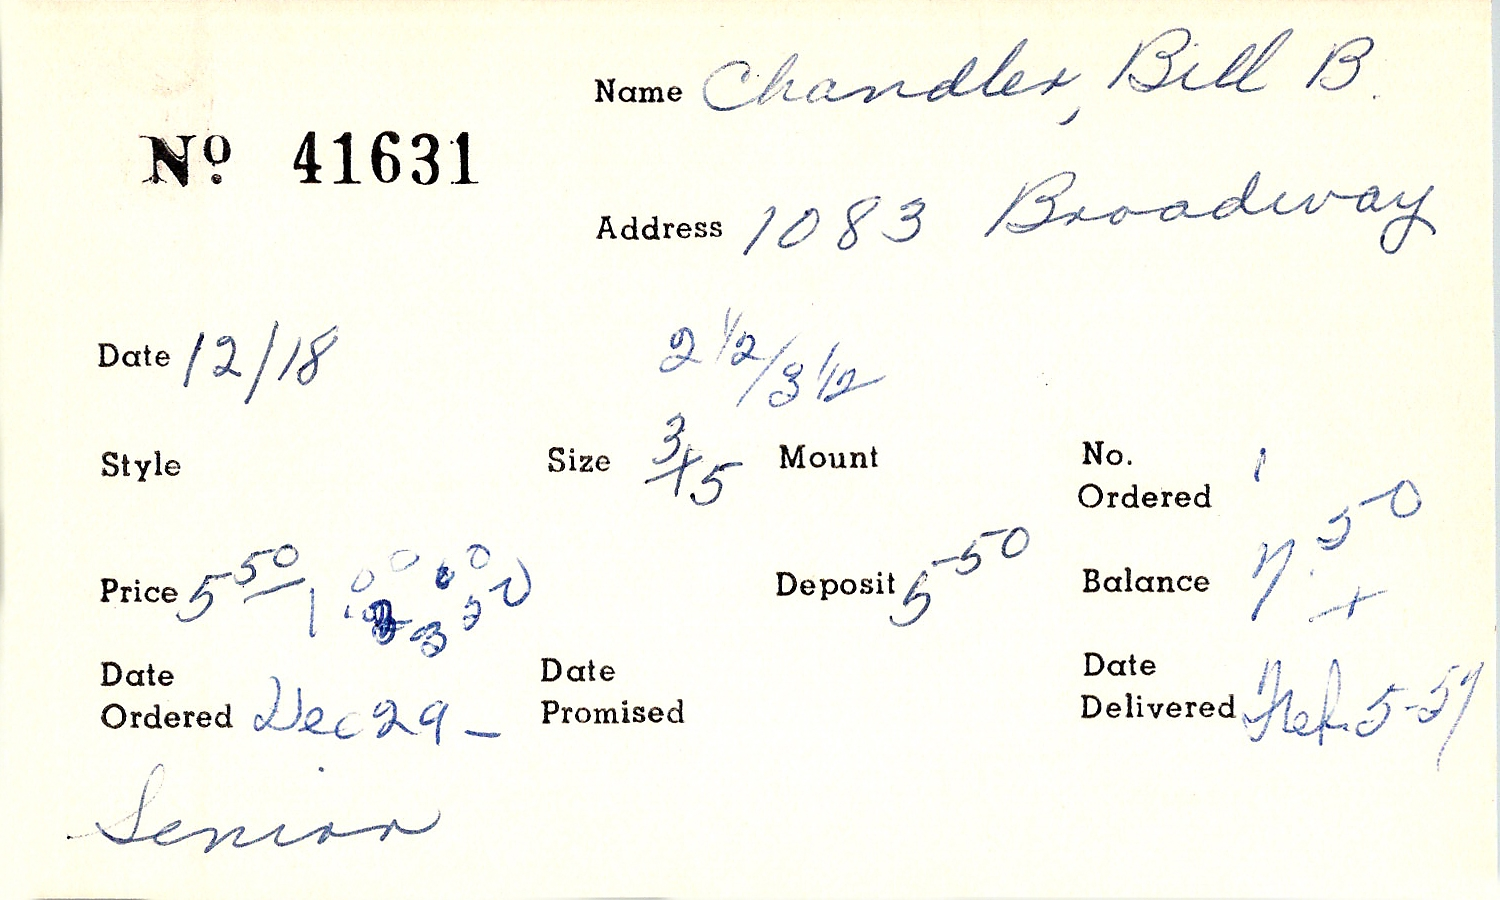 Index card for Bill B. Chandler